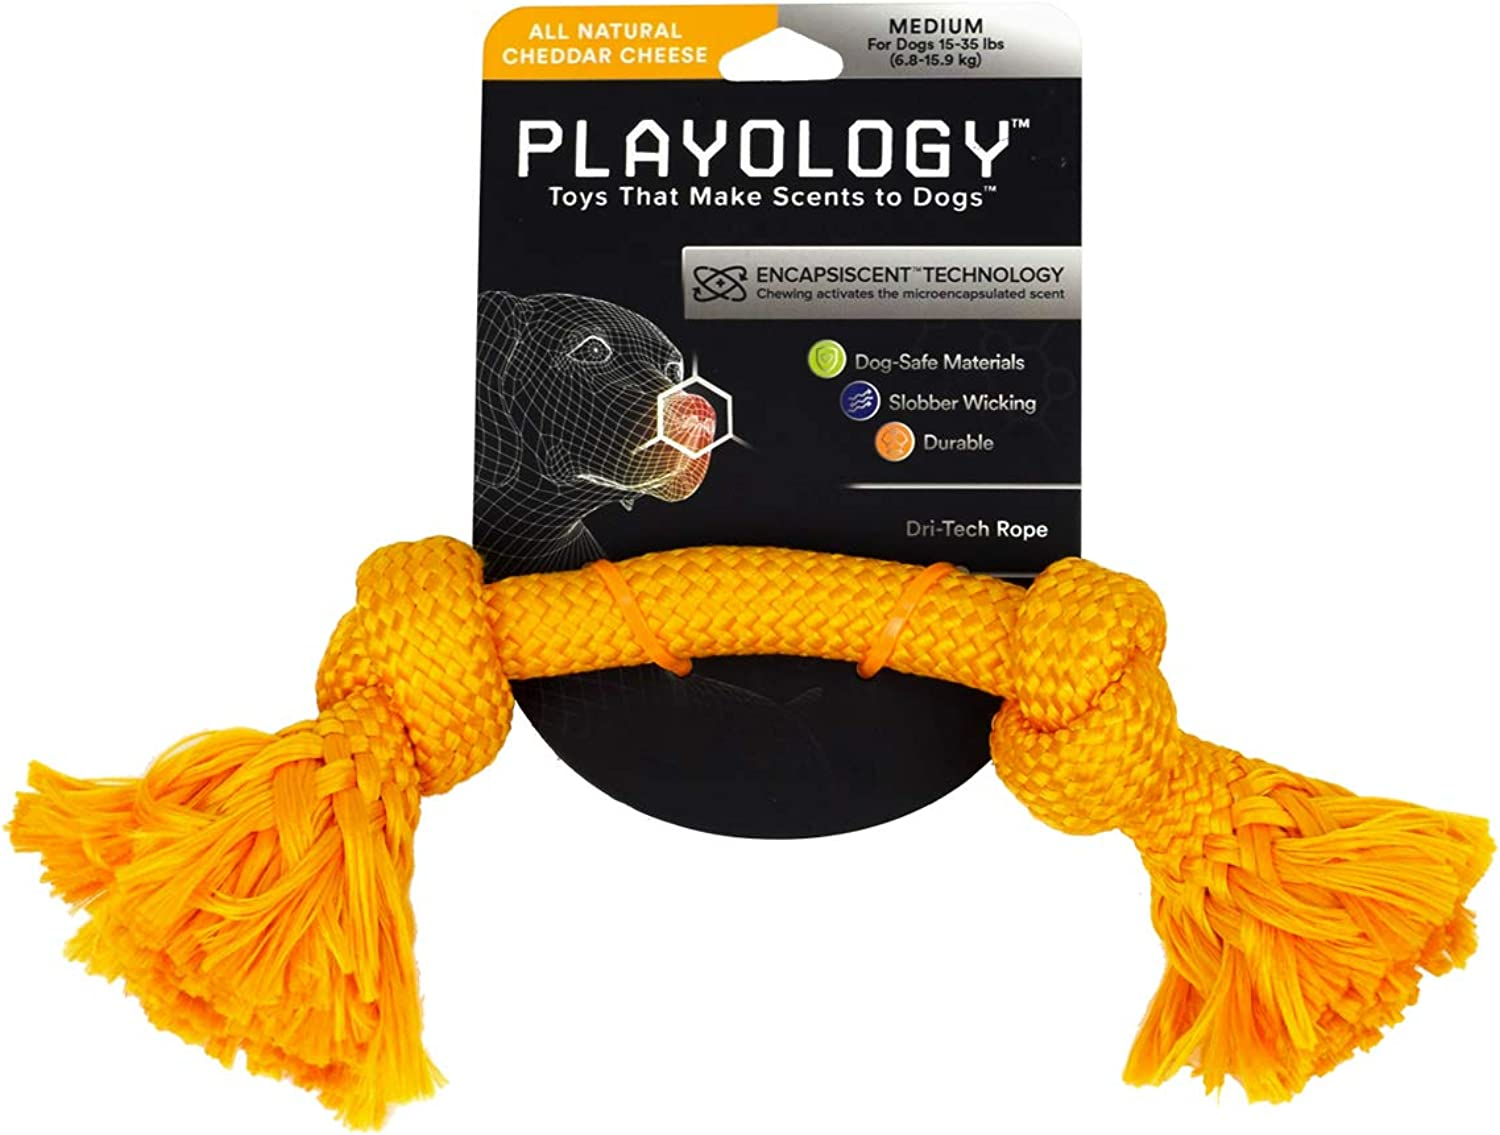 Playology DriTech Rope, a HealthEnhancing Cheddar Cheese Scented Chewable Dog Toy That Inspires Exercising Play, 12  Long Medium, in orange for Canines 1535 lb.